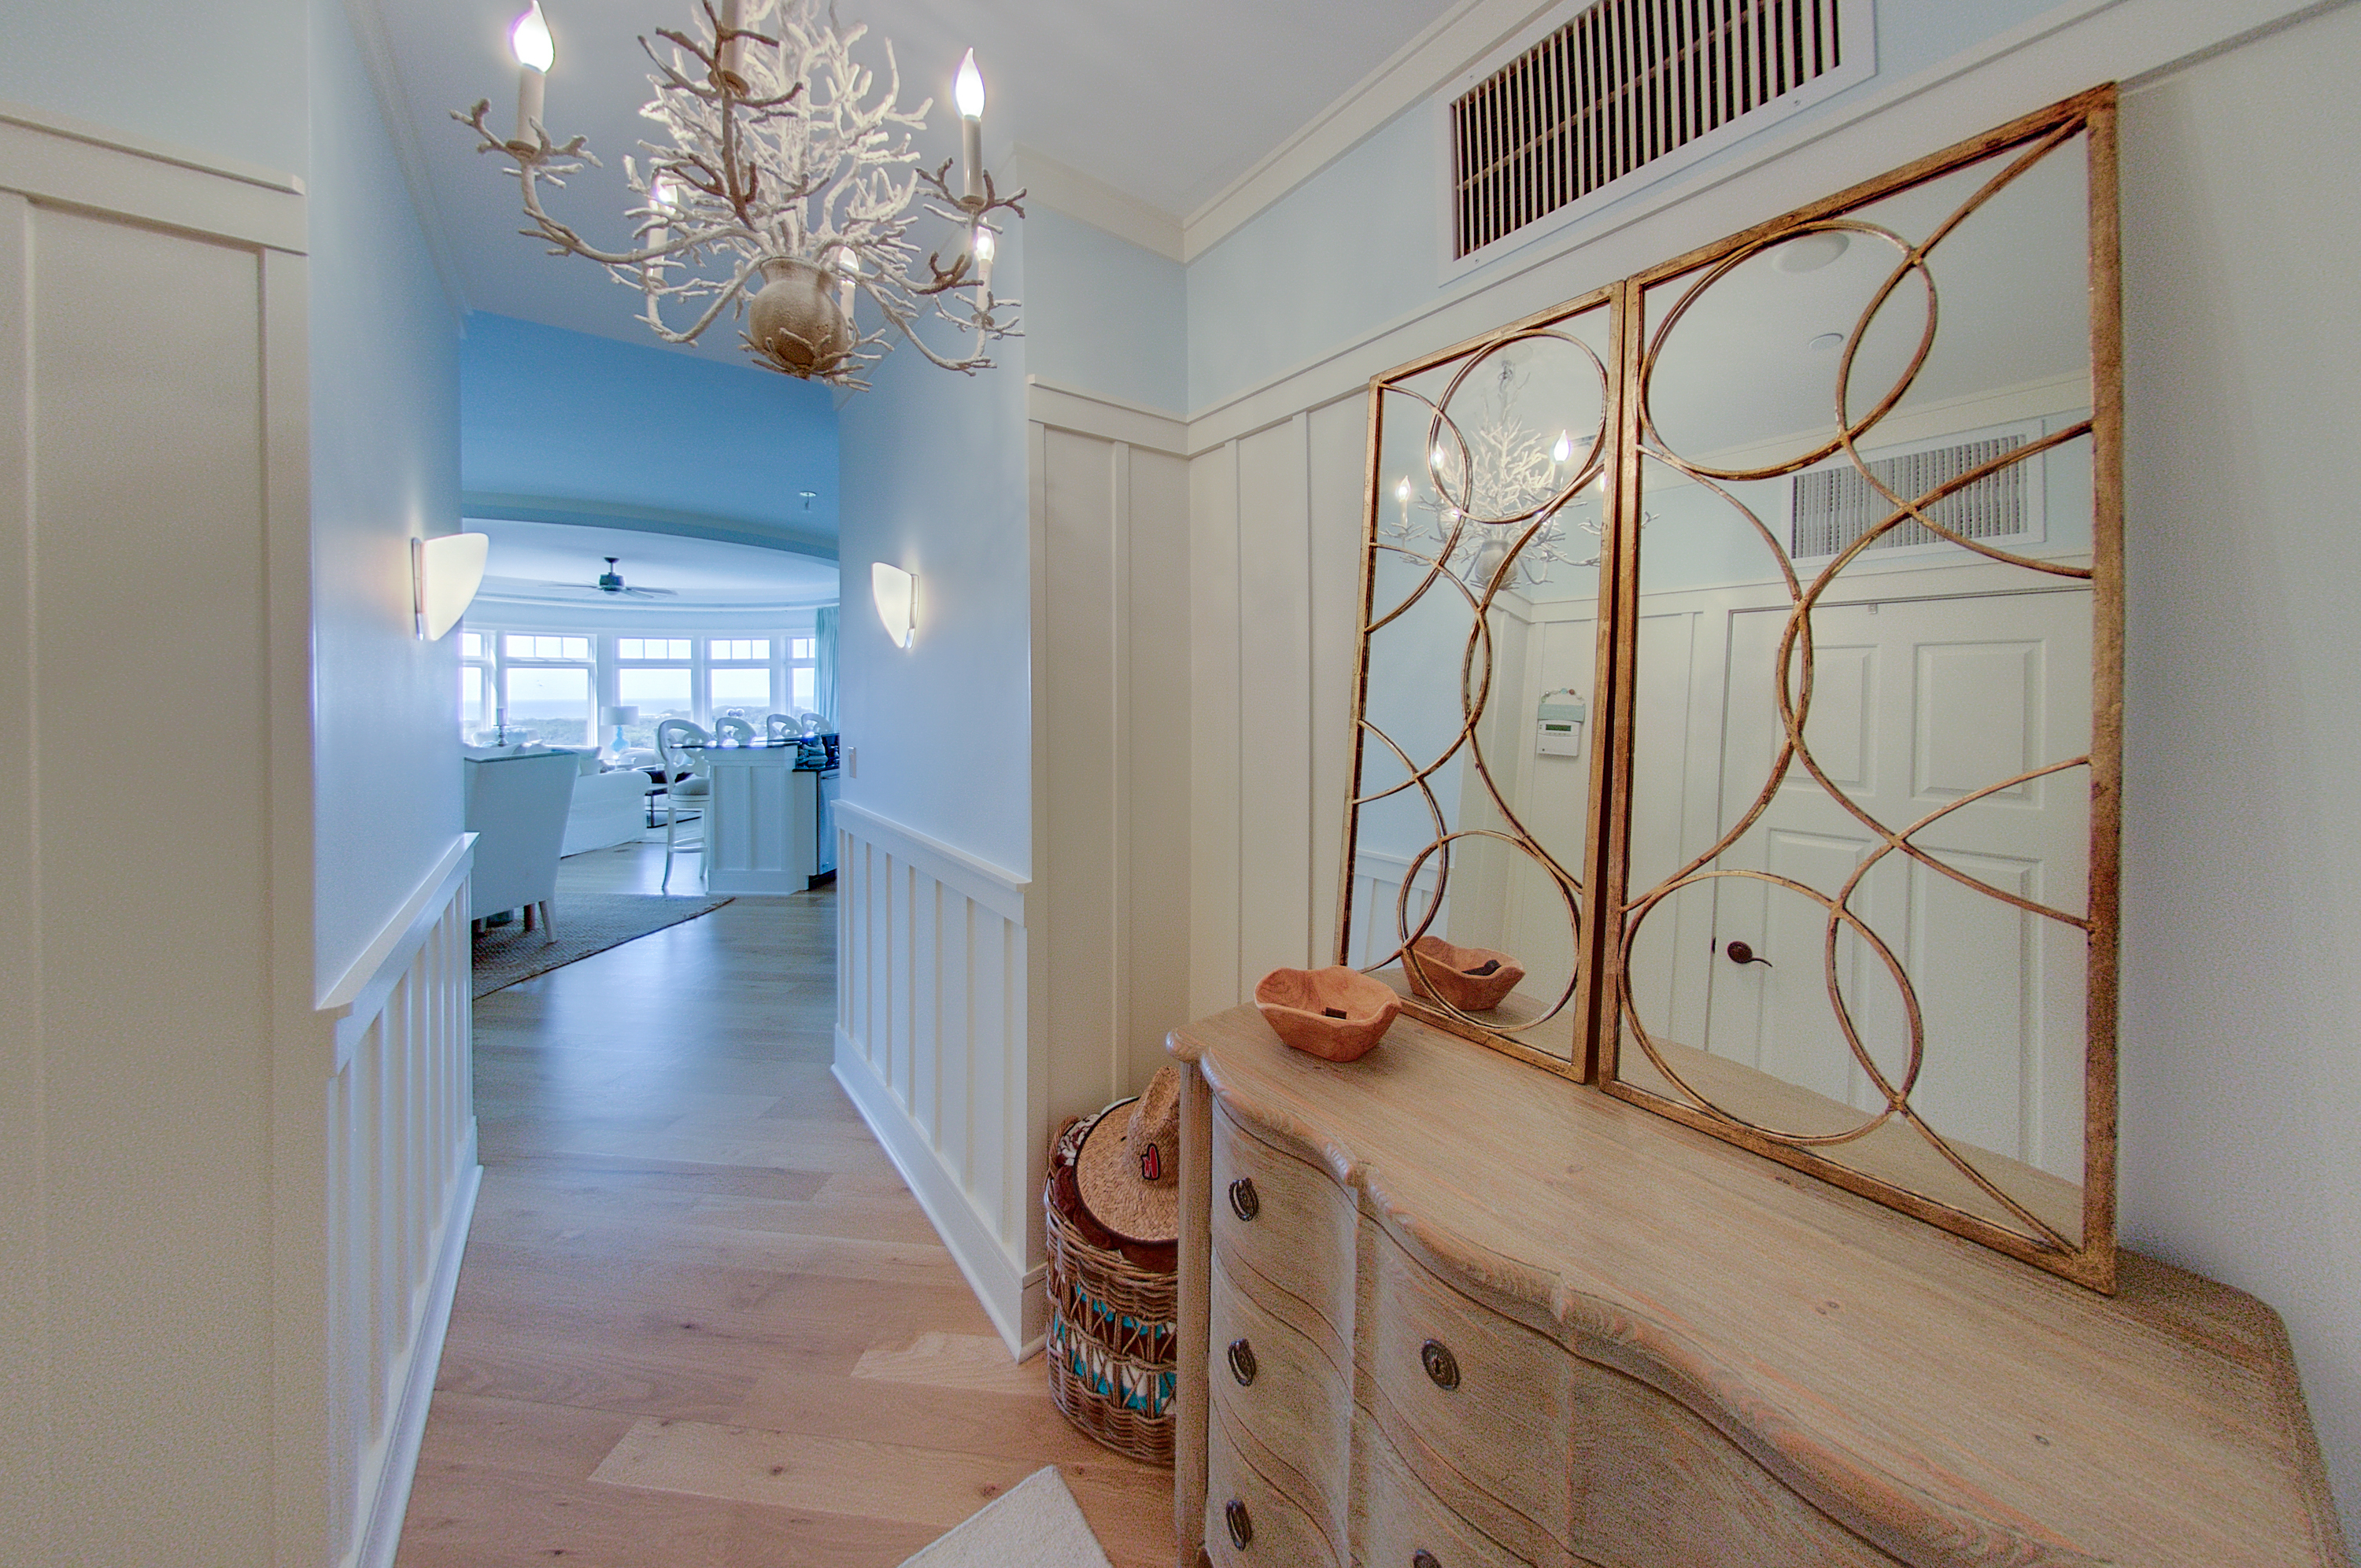 Entryway into the unit, views of the Gulf as you enter the unit.